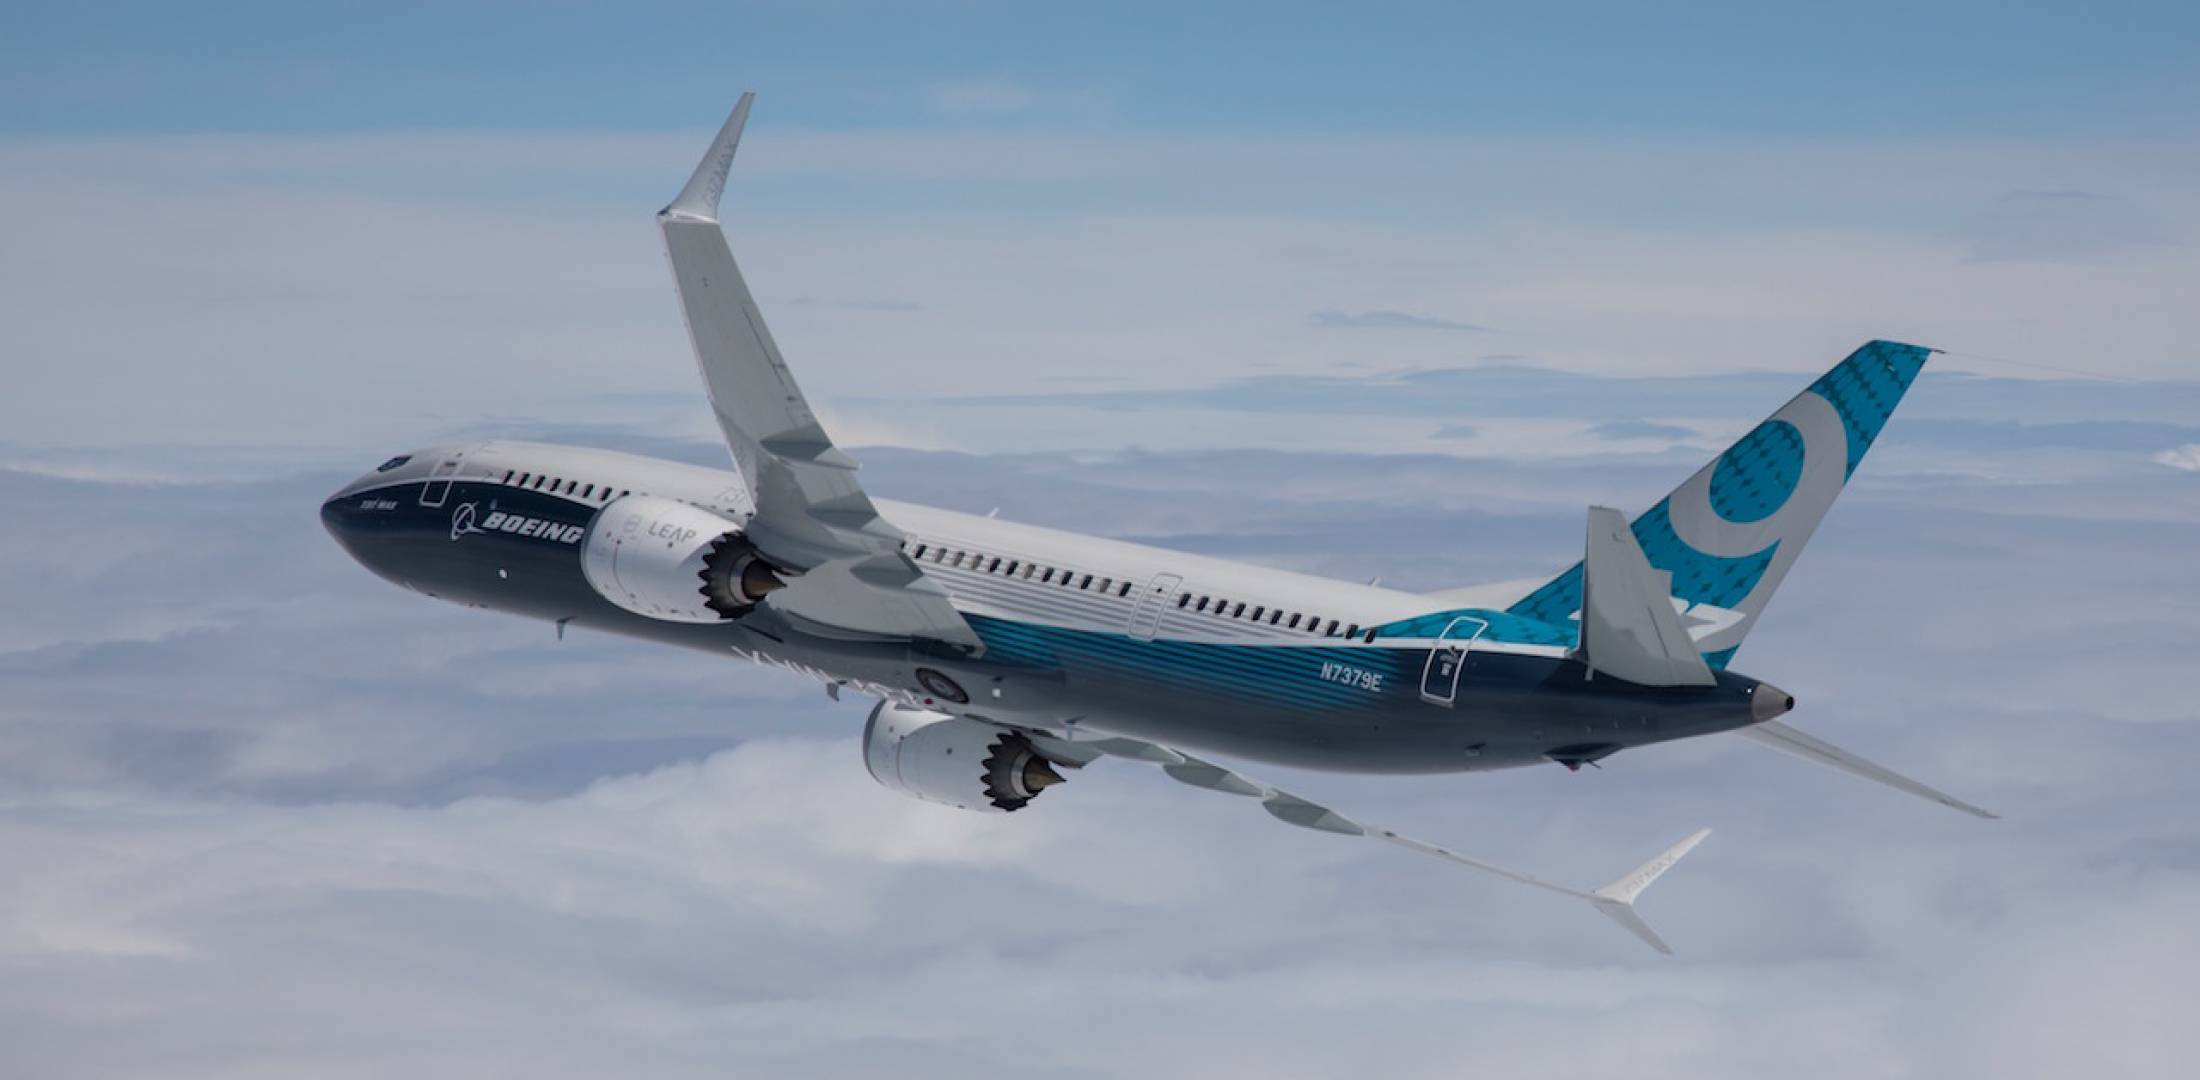 Boeing 737 Max 9 in flight